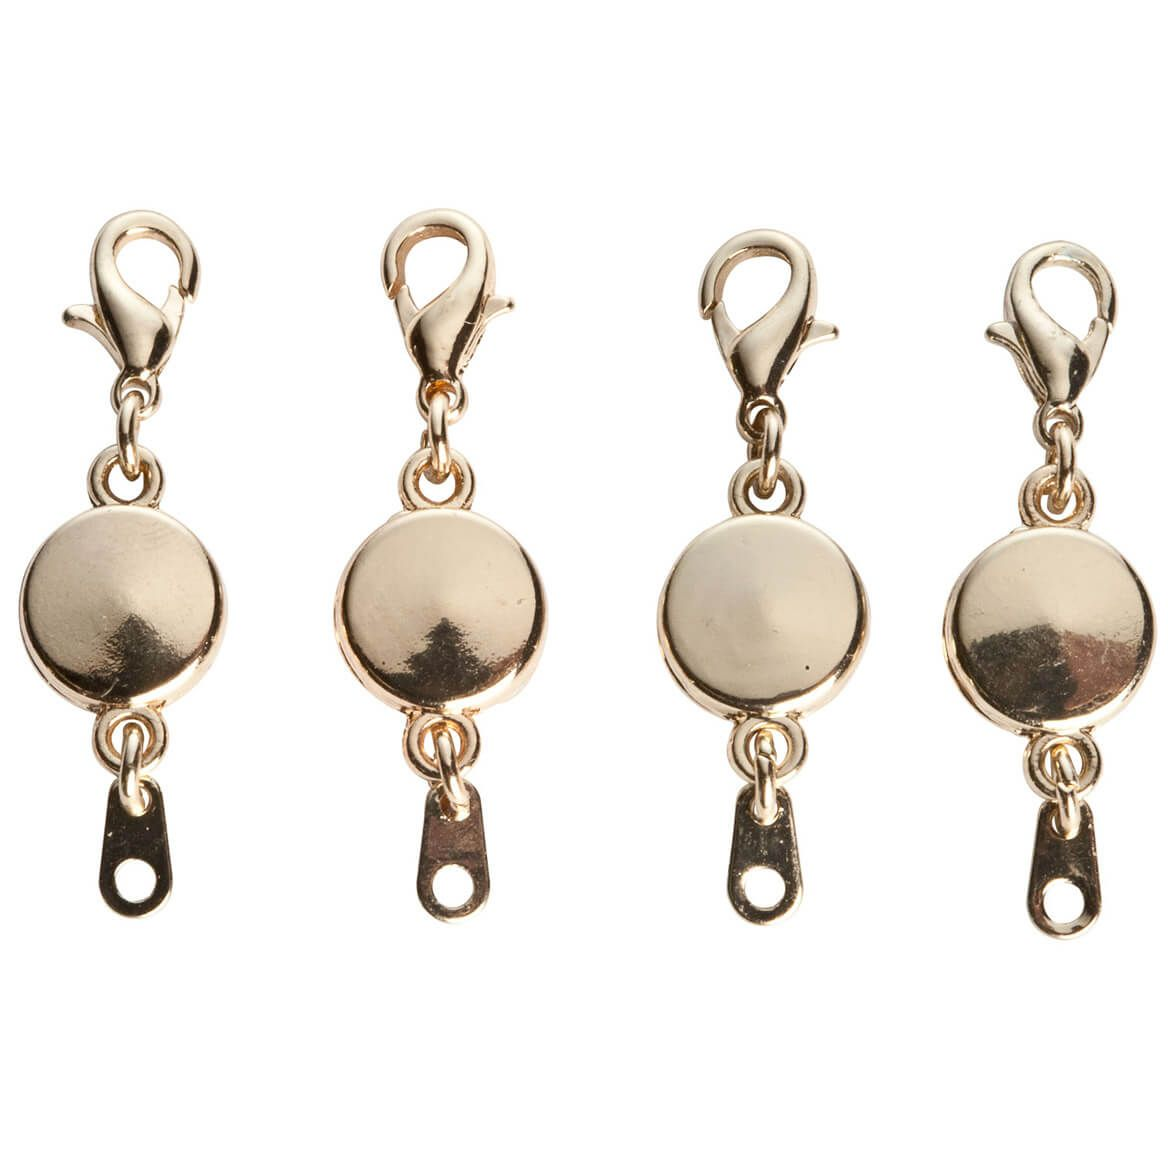 Locking Magnetic Jewelry Clasps - Set Of 4-337030